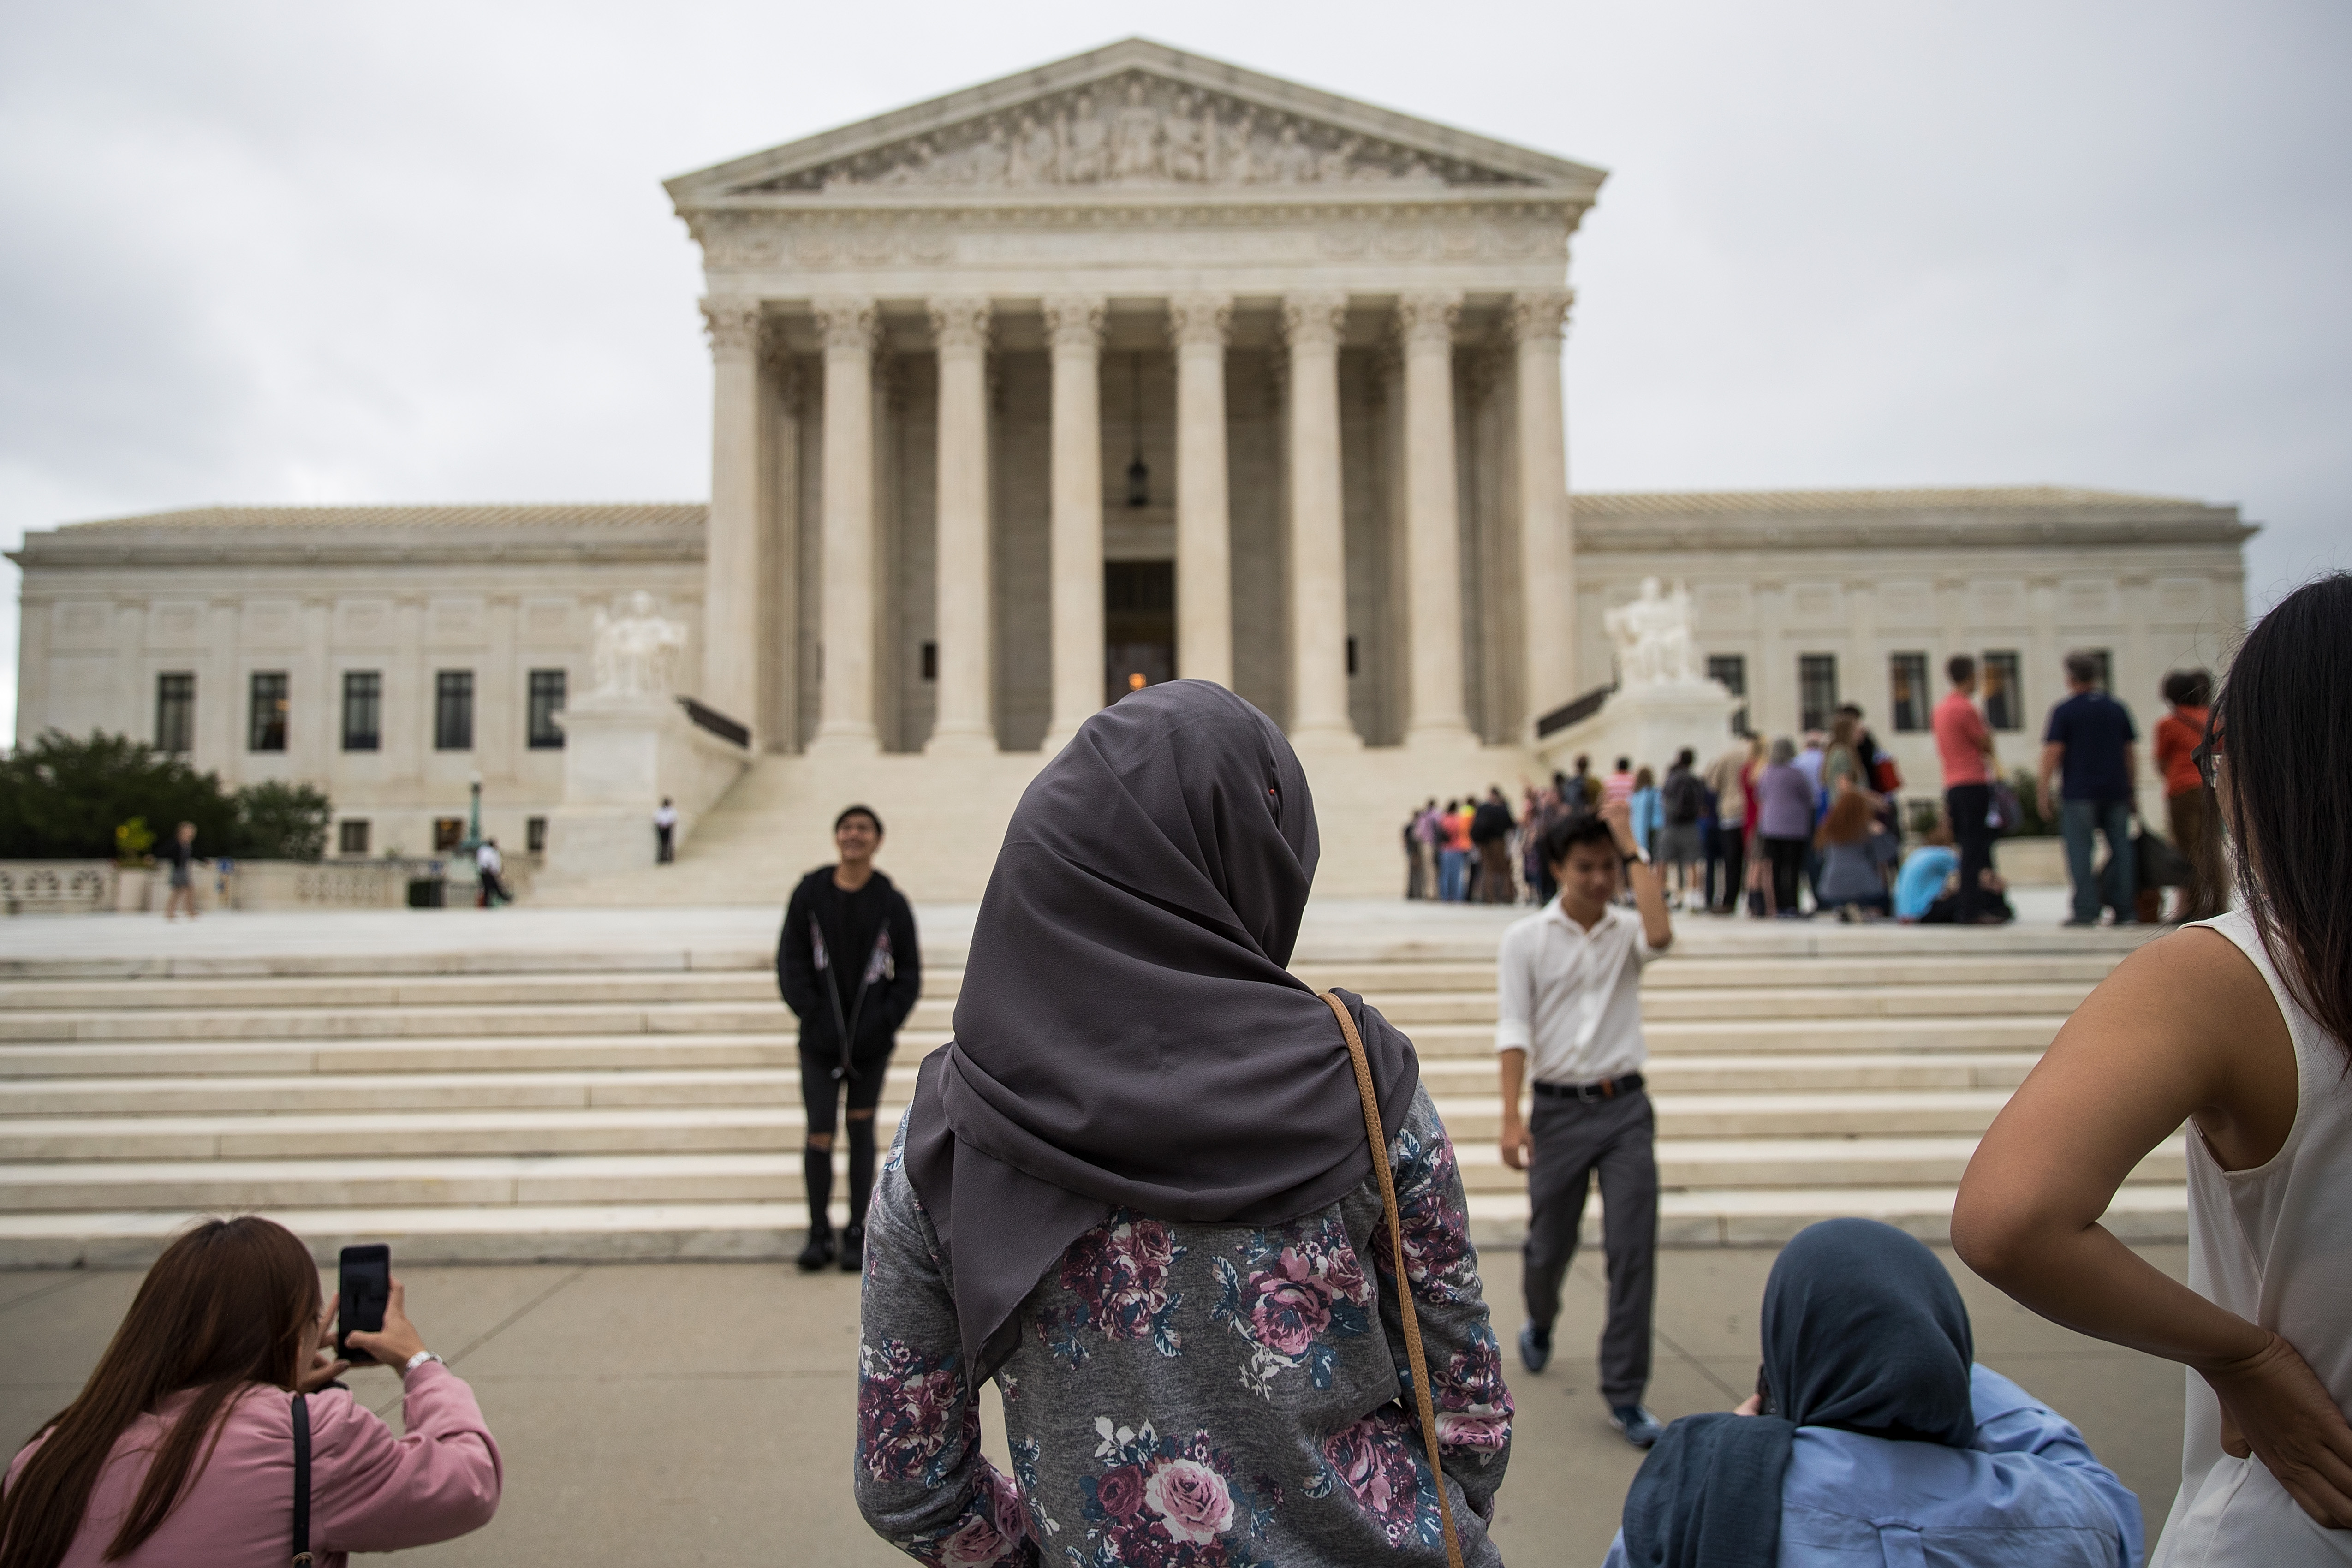 A woman wearing a hijab stands outside the U.S. Supreme Court, October 11, 2017 in Washington, DC.